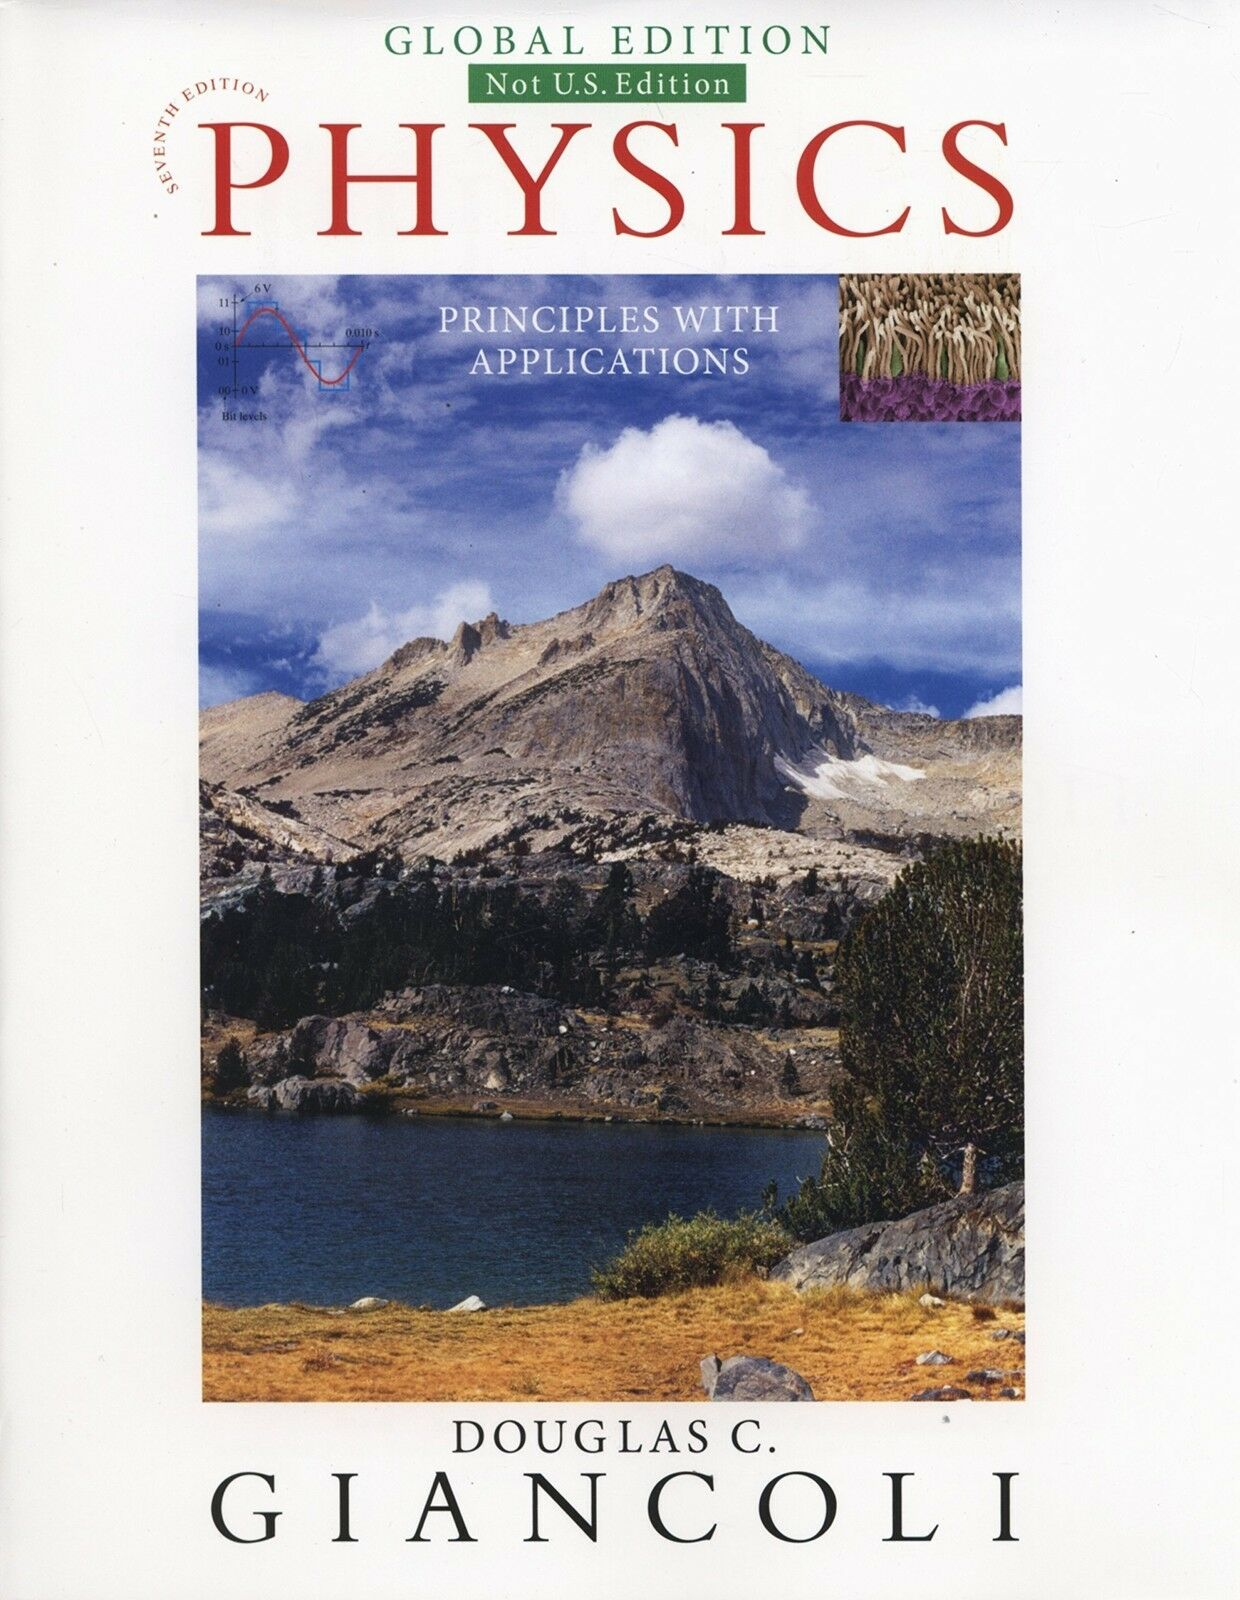 Physics principles with applications by douglas c giancoli item 3 physics principles with applications global edition by douglas c giancoli physics principles with applications global edition by douglas c fandeluxe Gallery